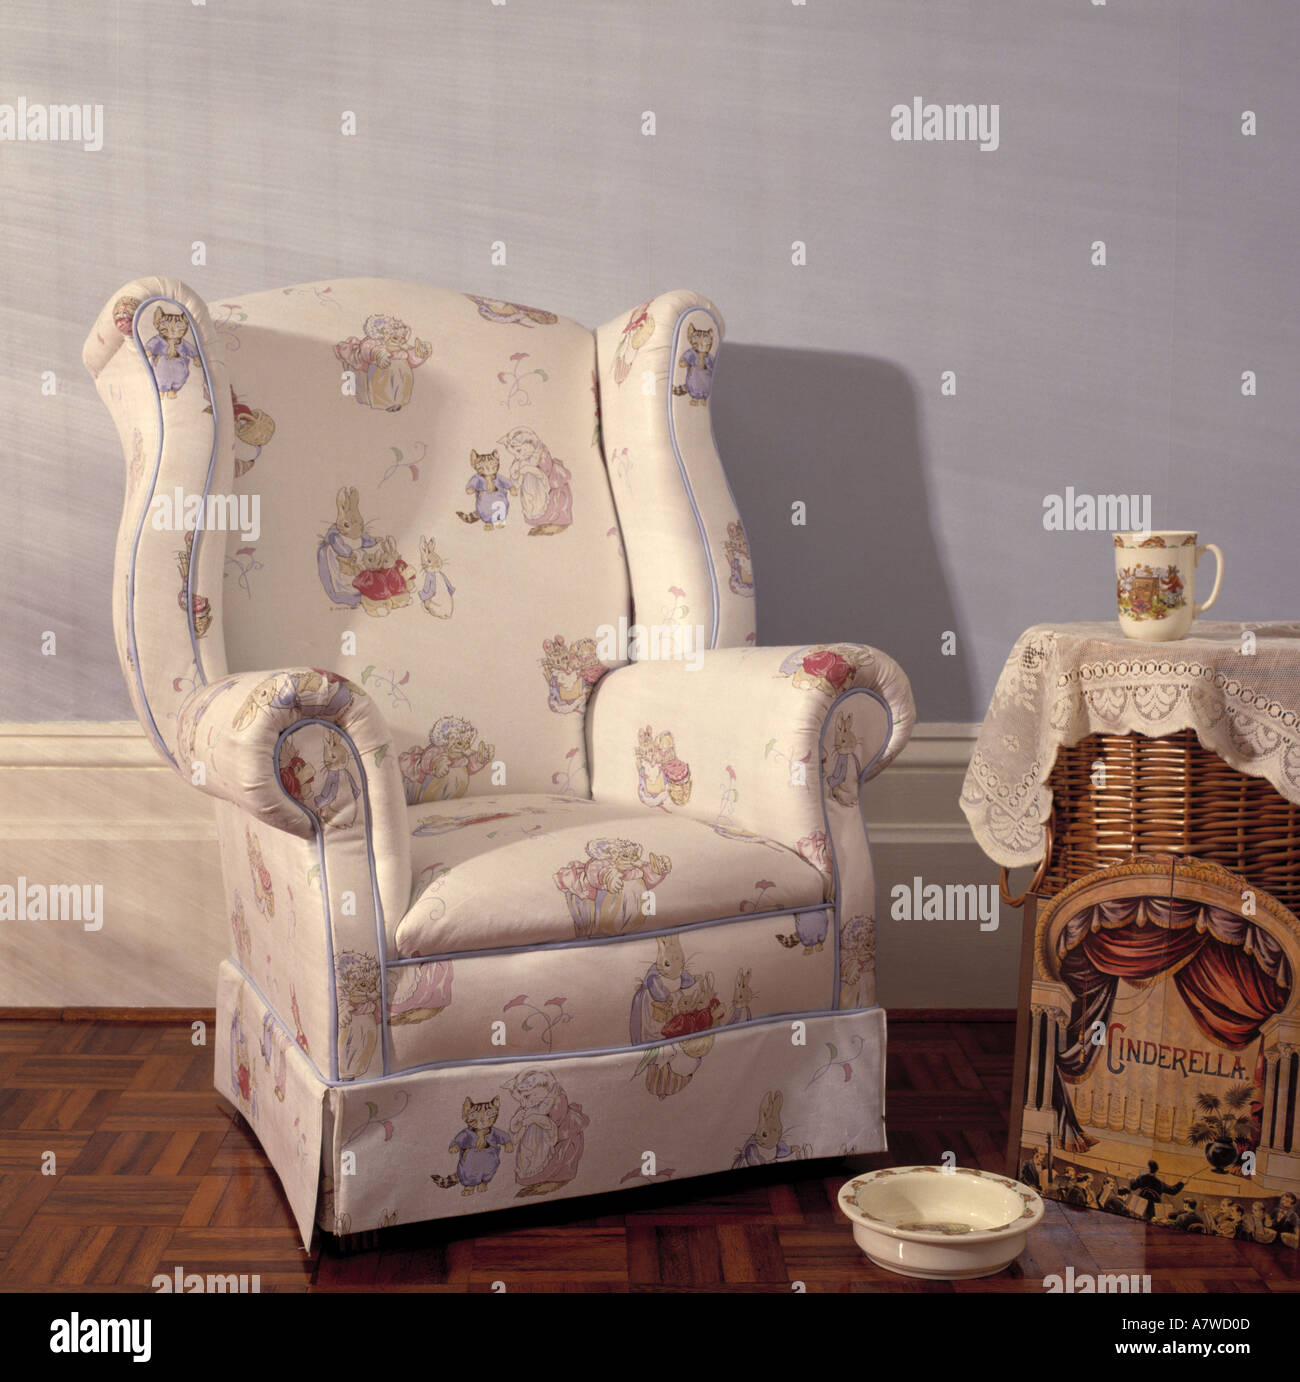 Close-up of Beatrix Potter fabric upholstered armchair - Stock Image